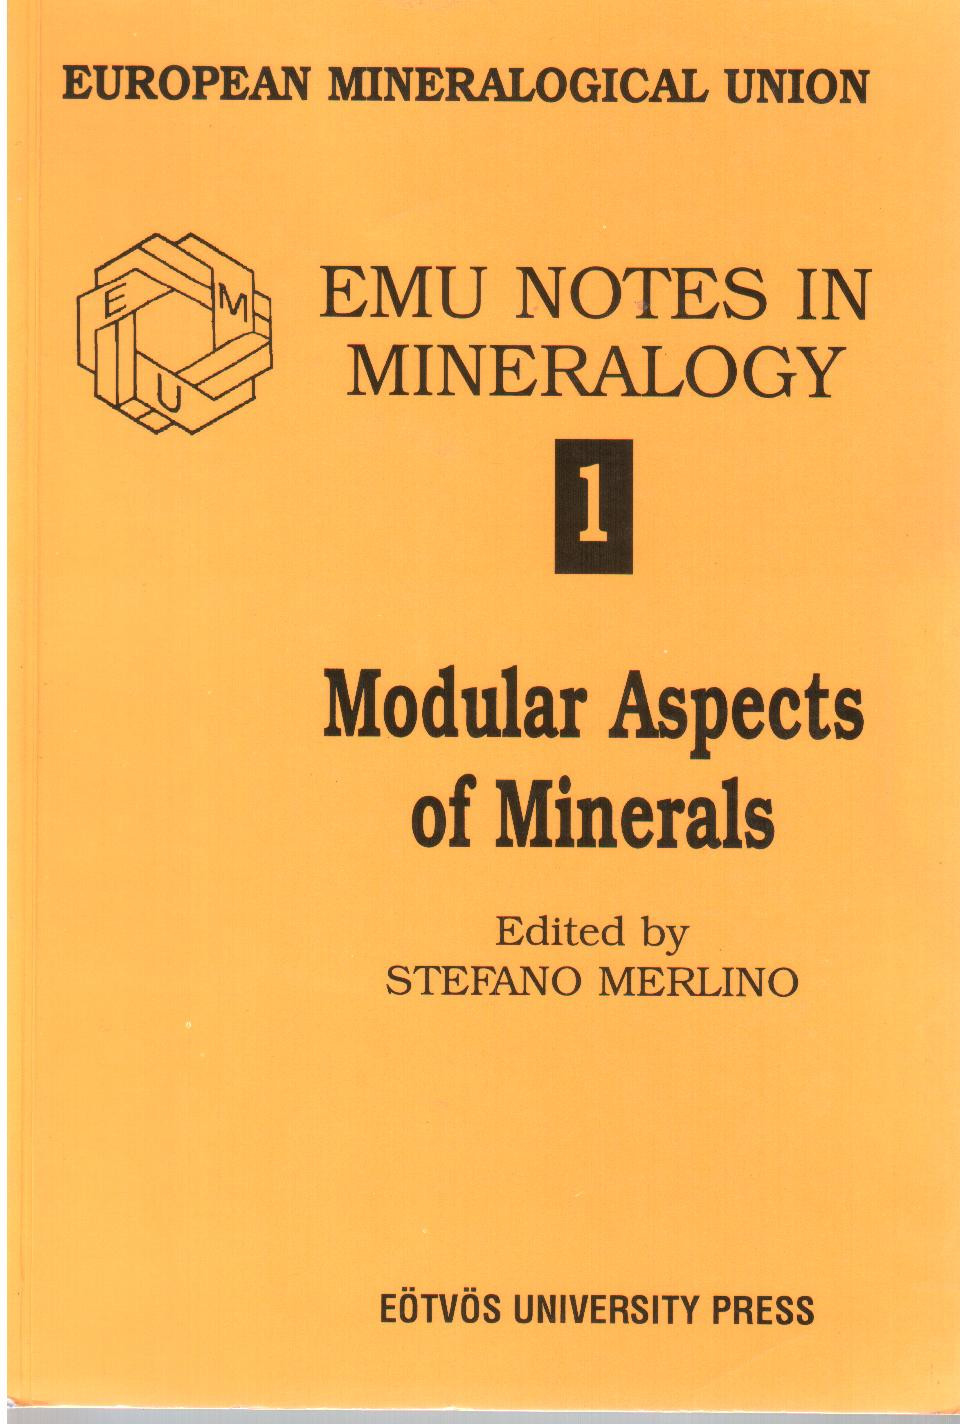 EMU 1 - Modular Aspects of Minerals